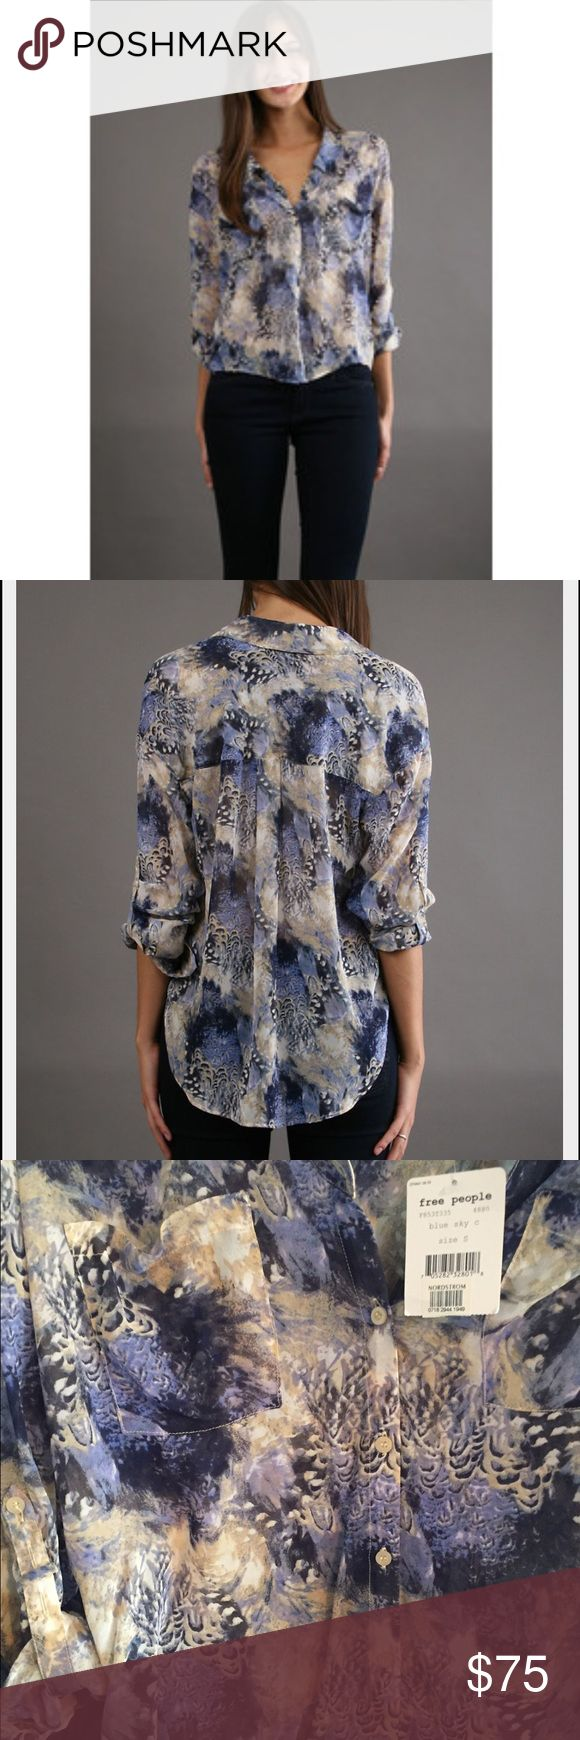 Free People 'Georgette' Top in Blue Sky size S Free People 'Georgette' Top in Blue Sky size S Free People Tops Blouses